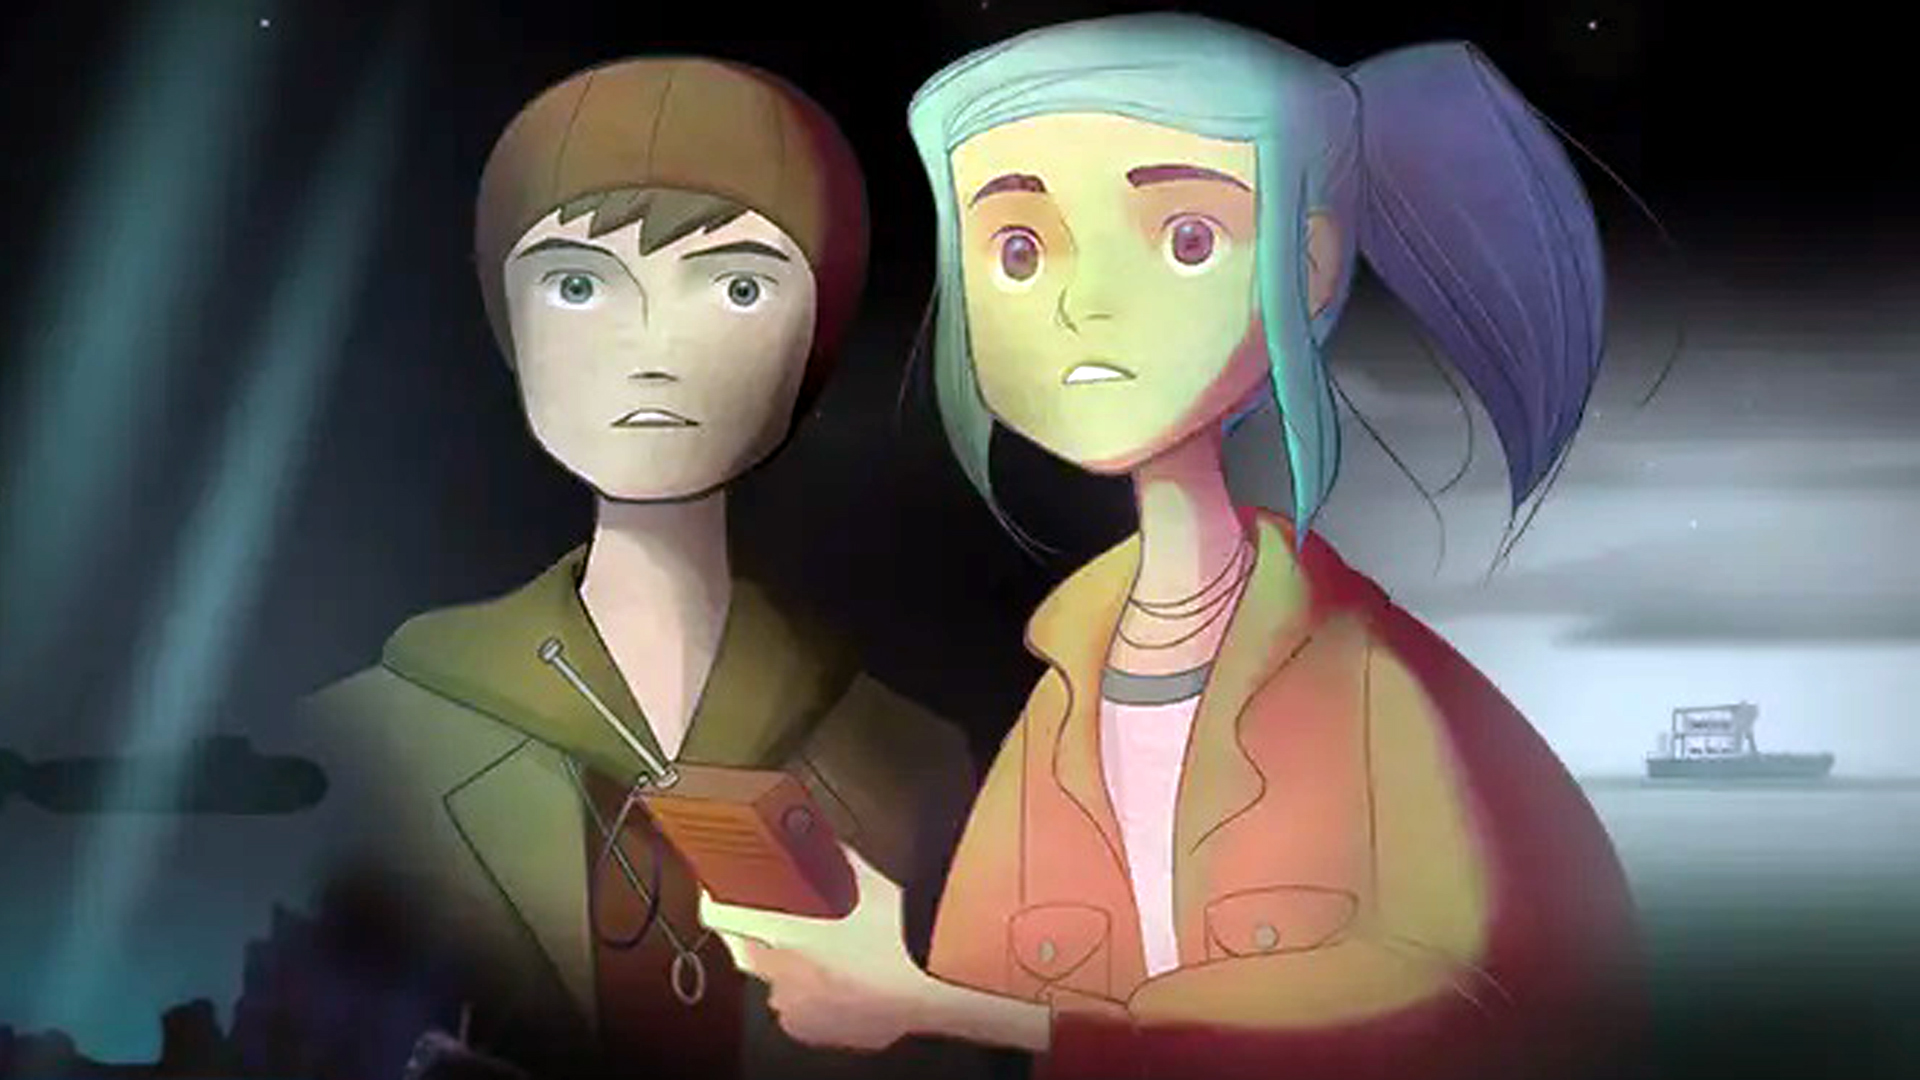 Oxenfree 2's villains have started appearing in the original Oxenfree